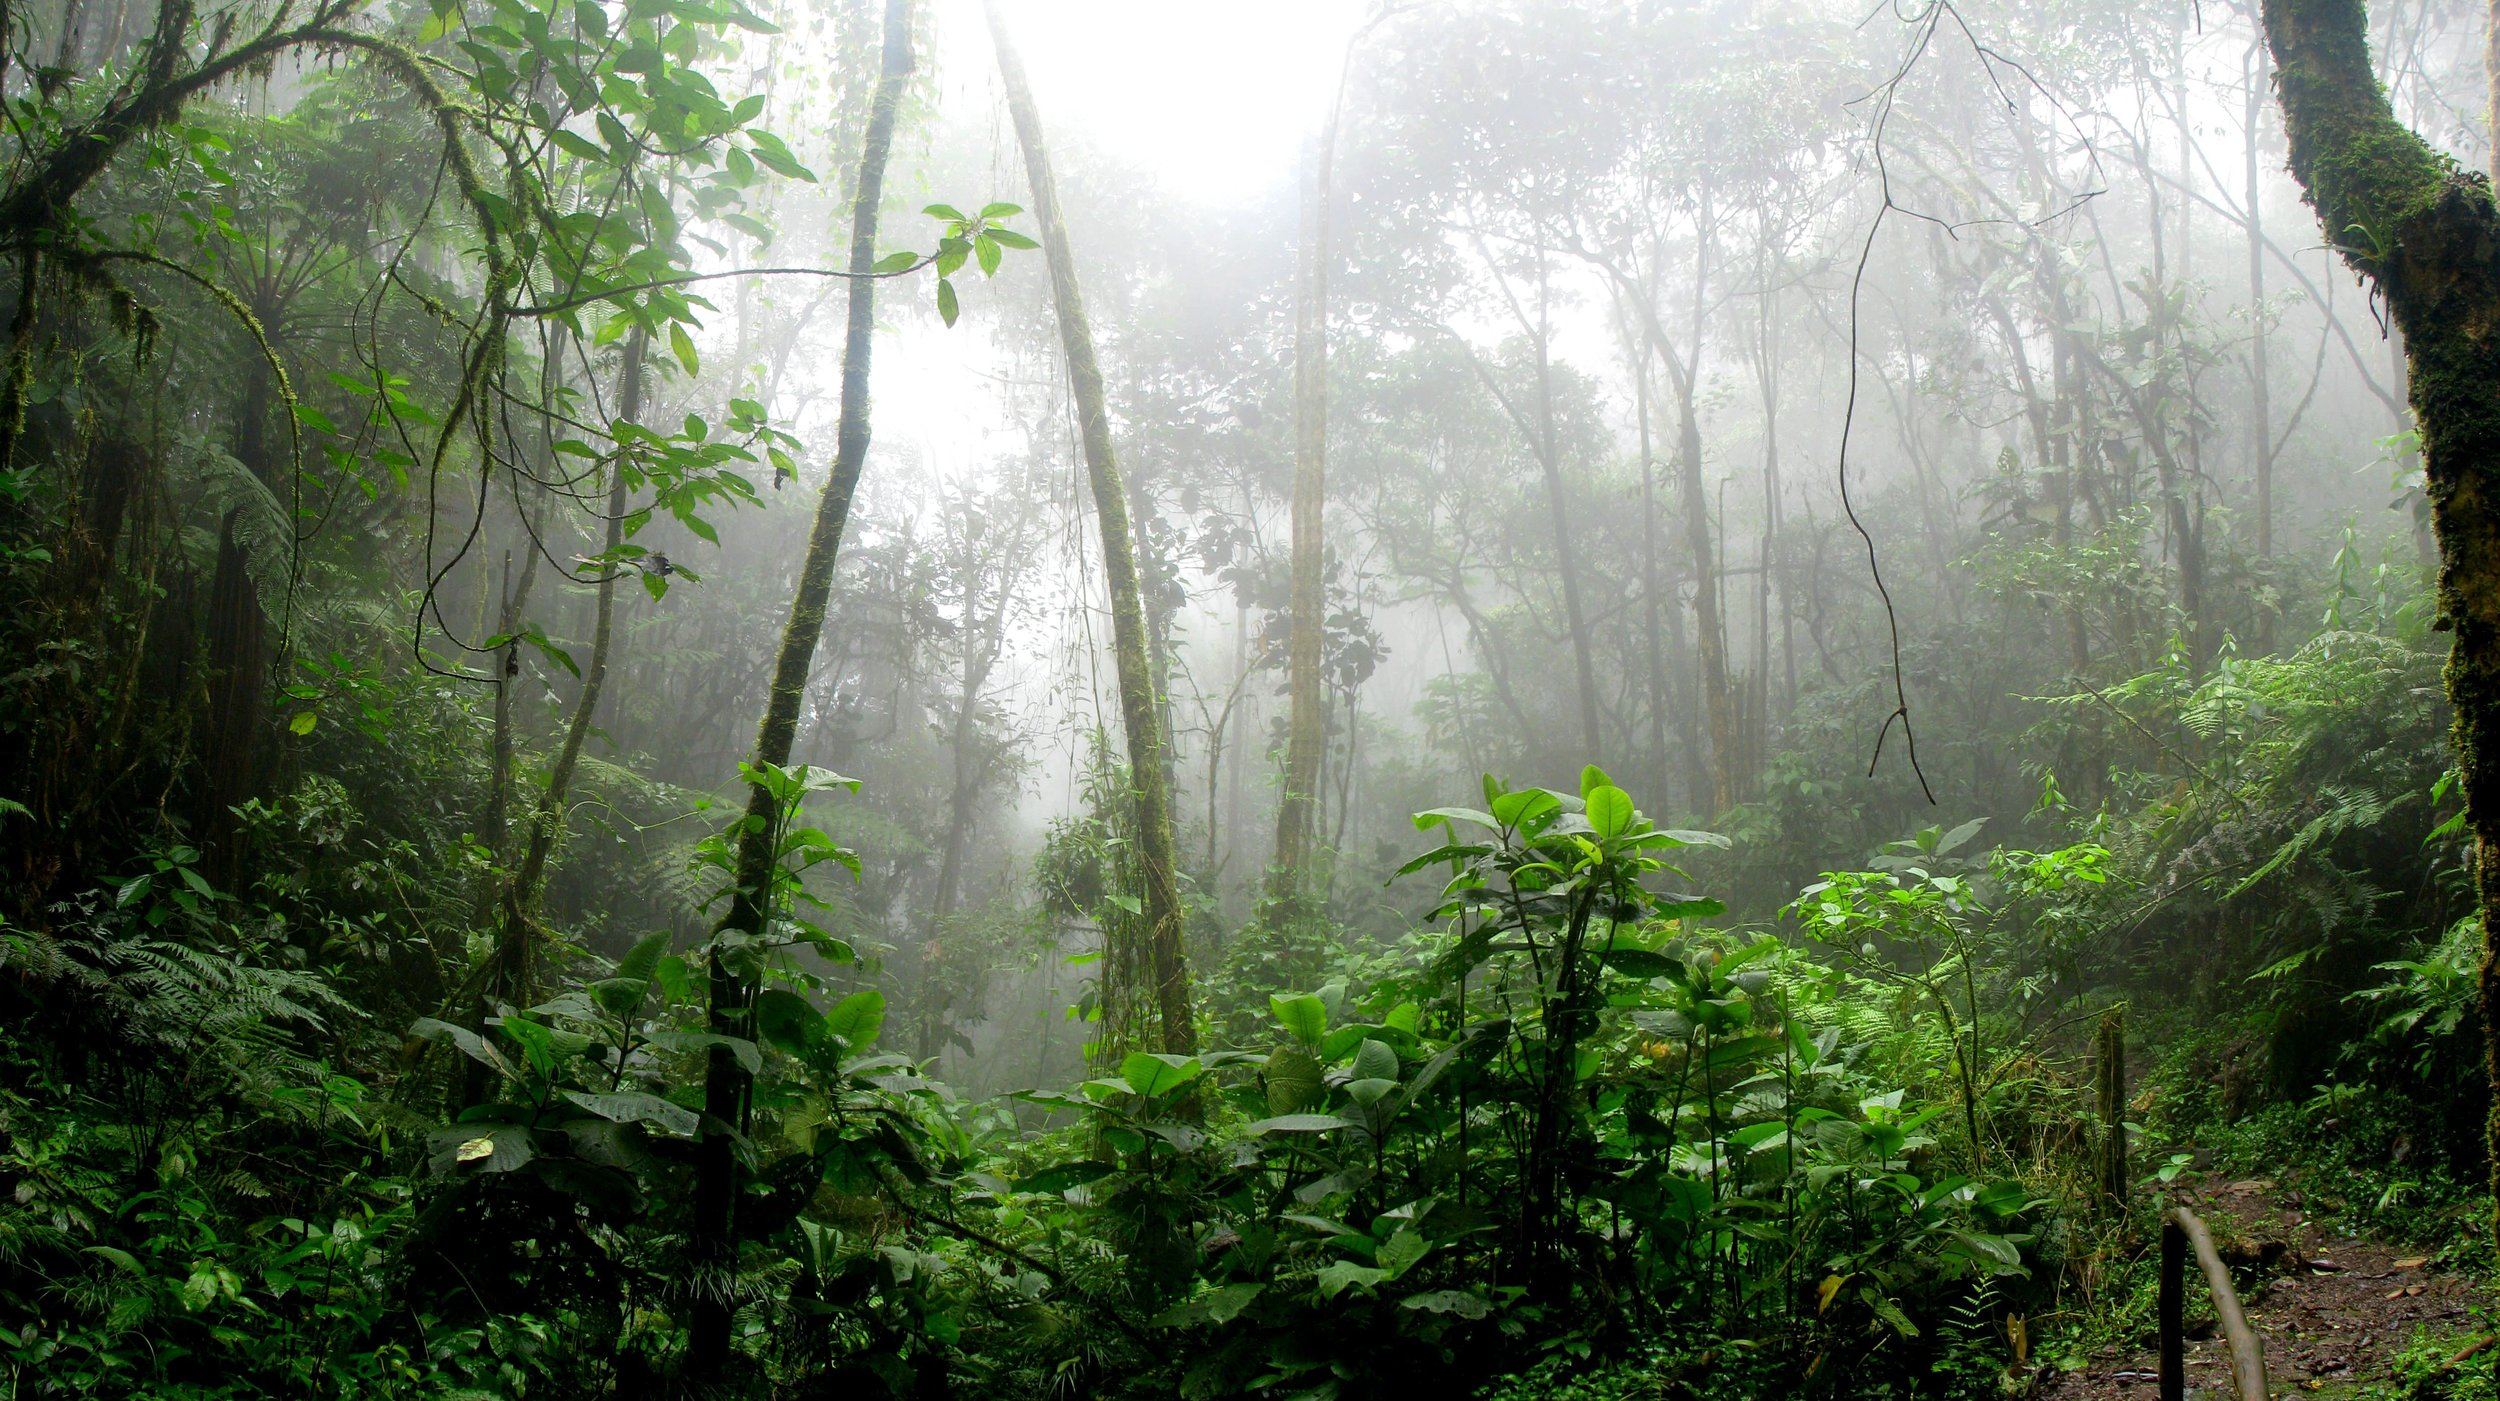 EMMA-RAE-AMAZON-RAINFOREST-FOREST-FIRES-HOW-TO-HELP